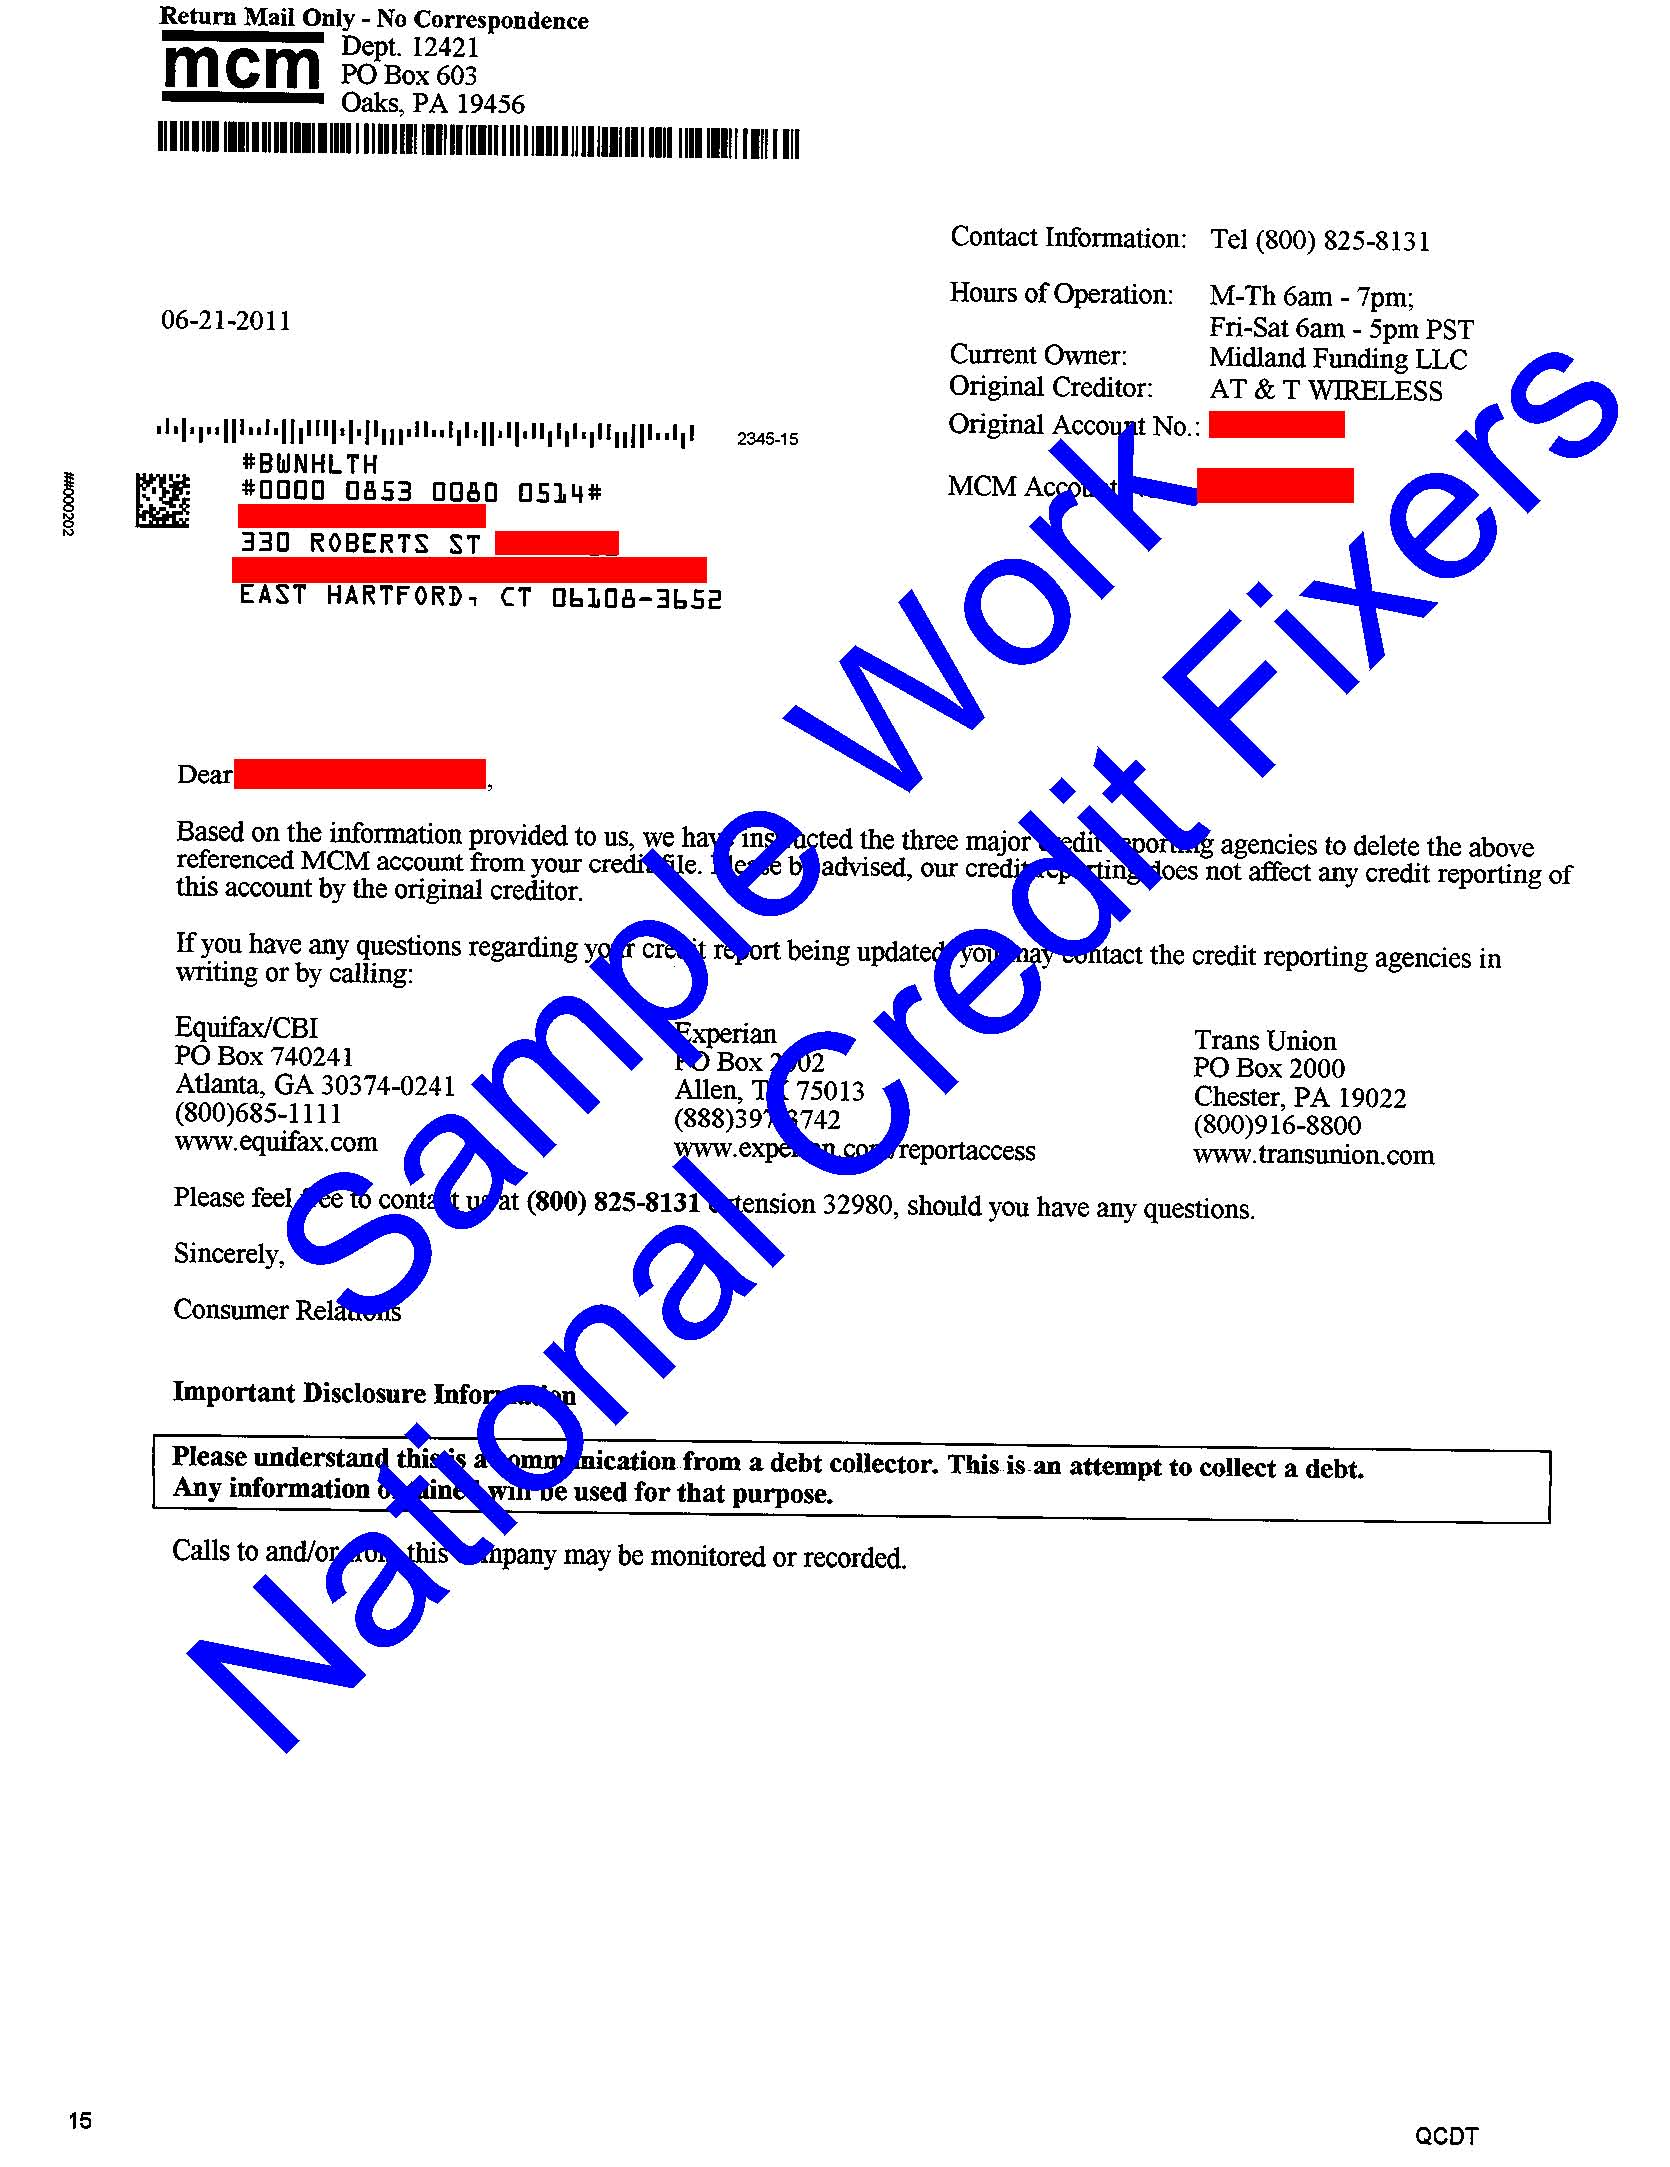 Midland Credit Management Deletion 1